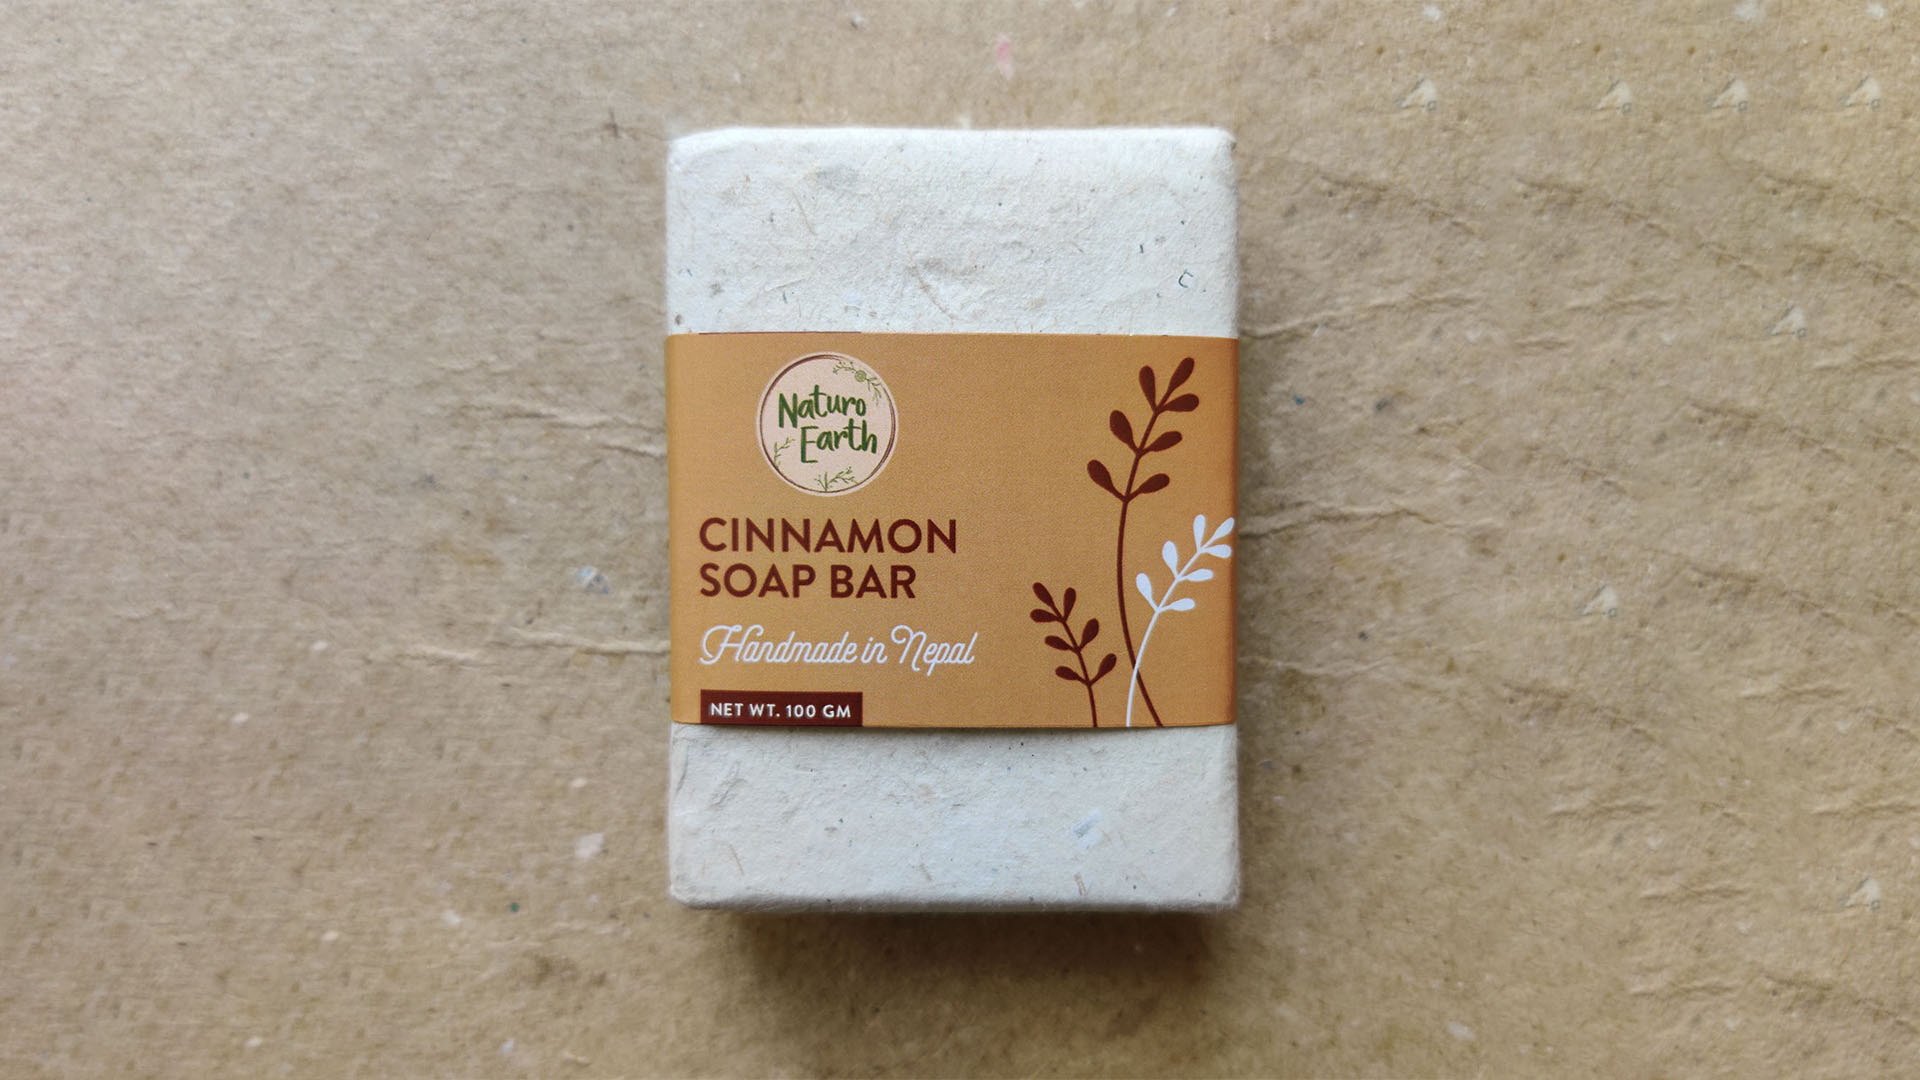 Cinnamon Soap Bar For Face And Body